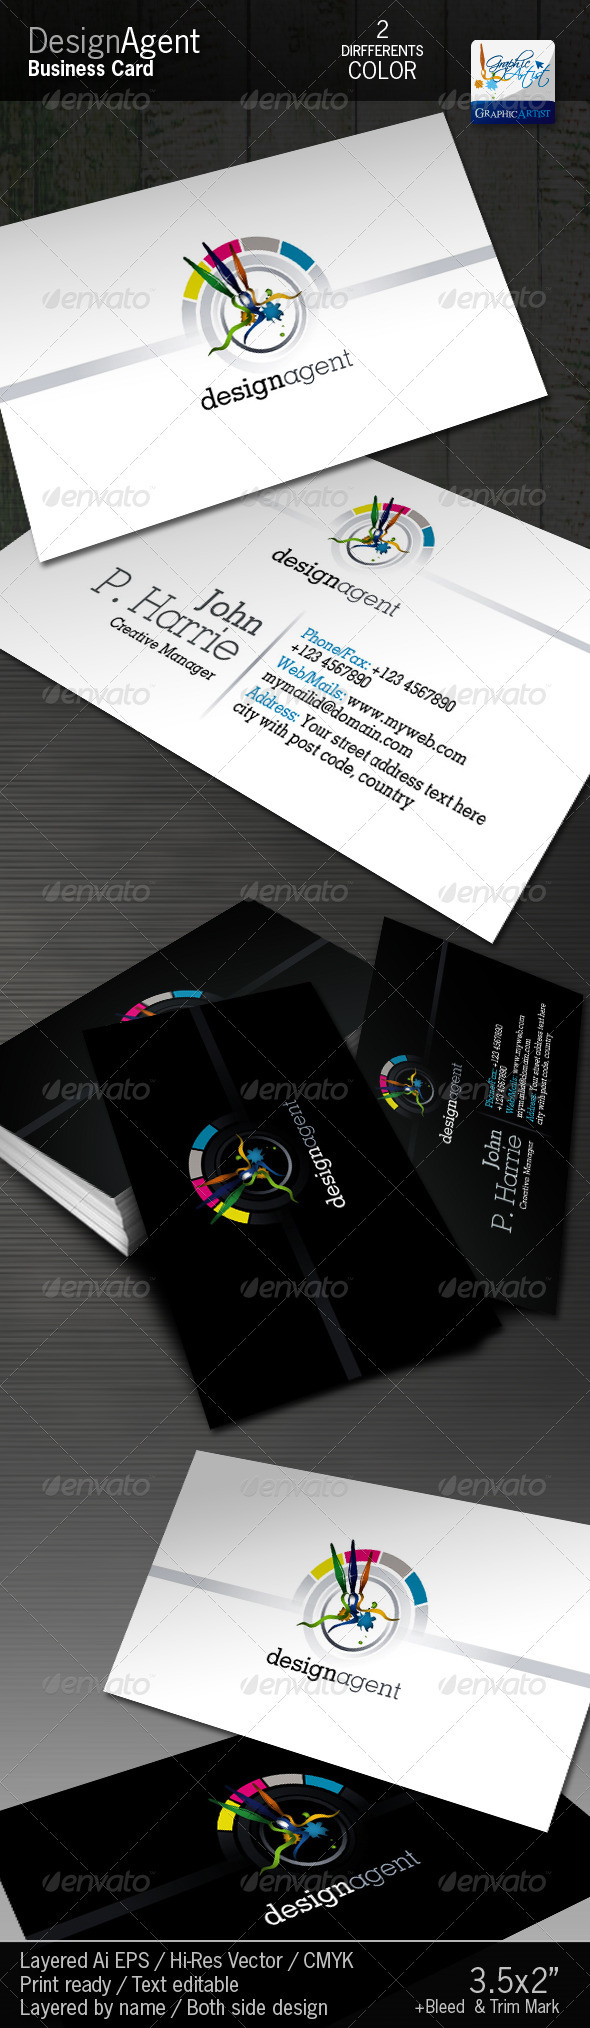 DesignAgent Corporate Business Card - Corporate Business Cards